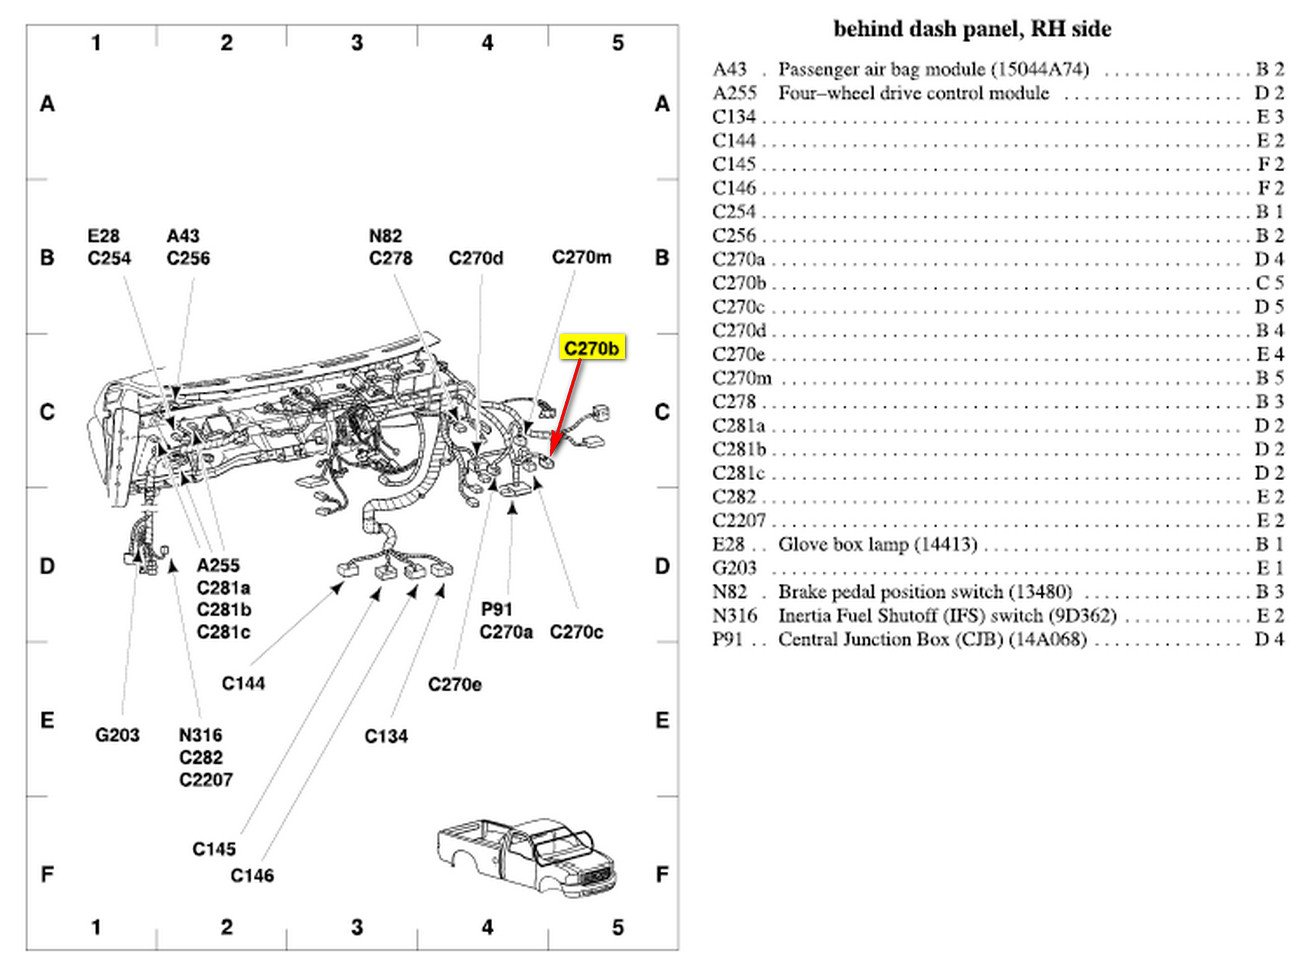 2000 F450 Trailer Brake Trouble Shoot Wiring Diagram from ww2.justanswer.com